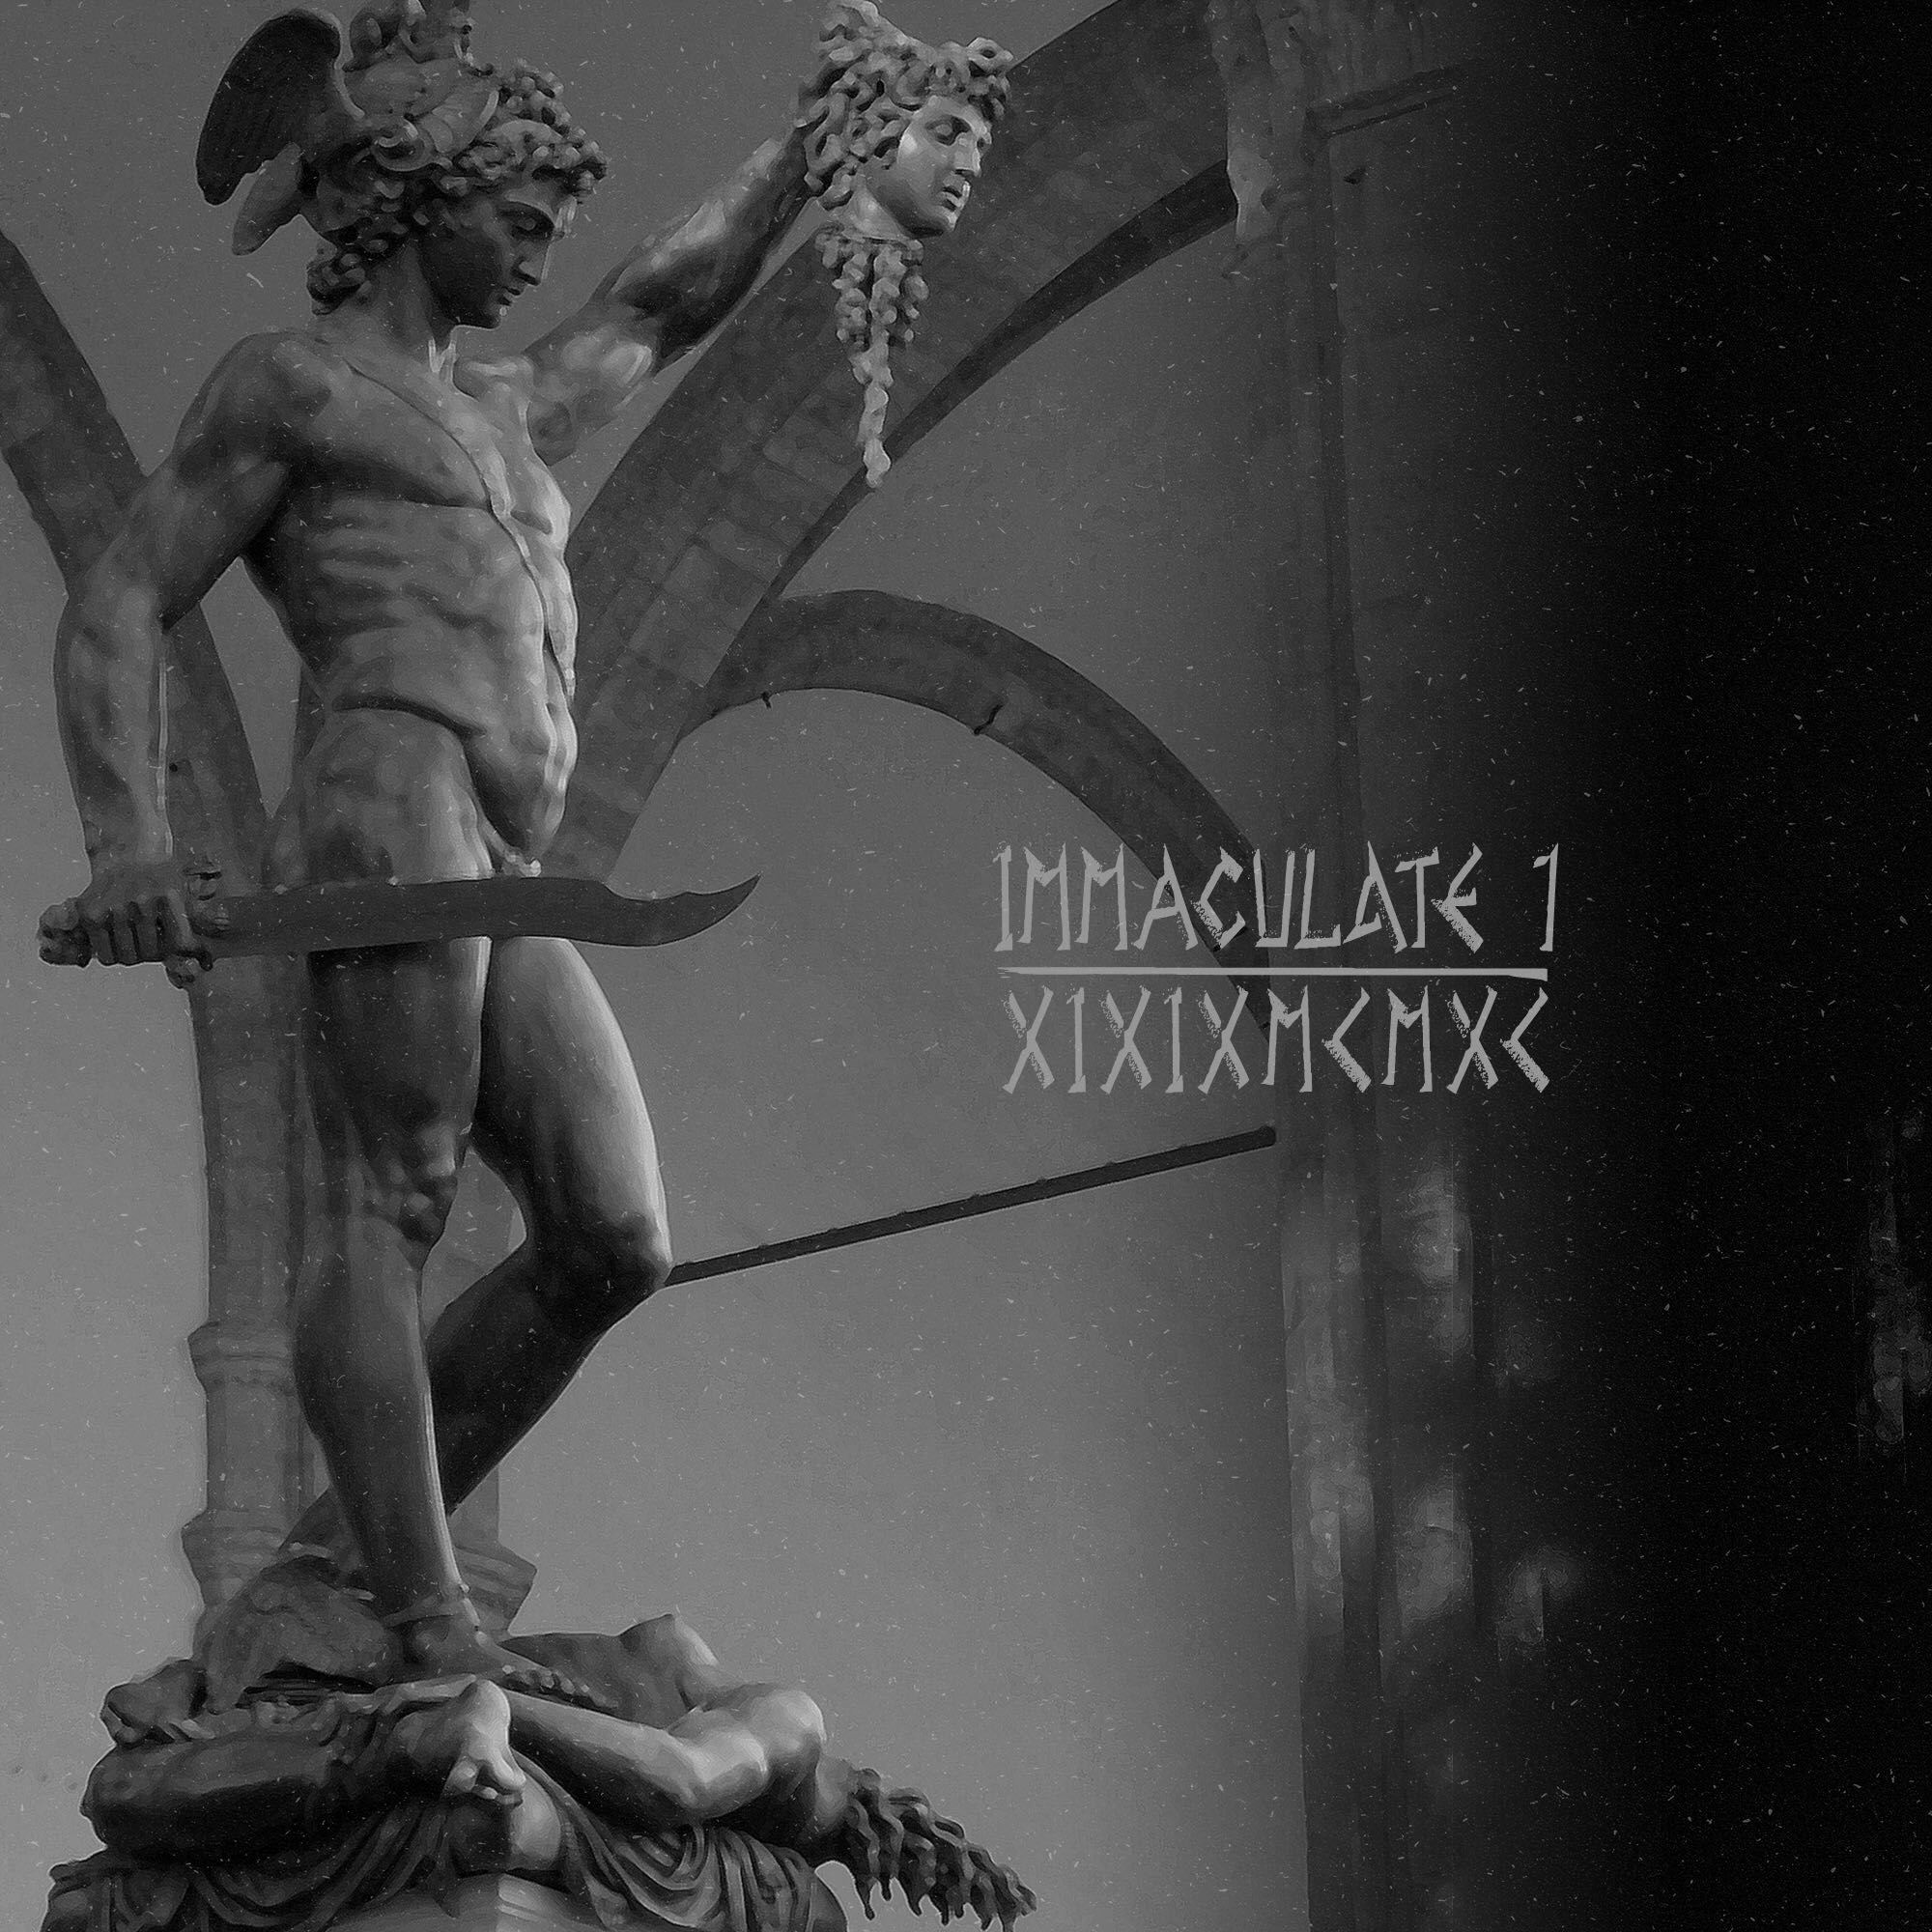 Immaculate 1 –  Knockk Knockkk